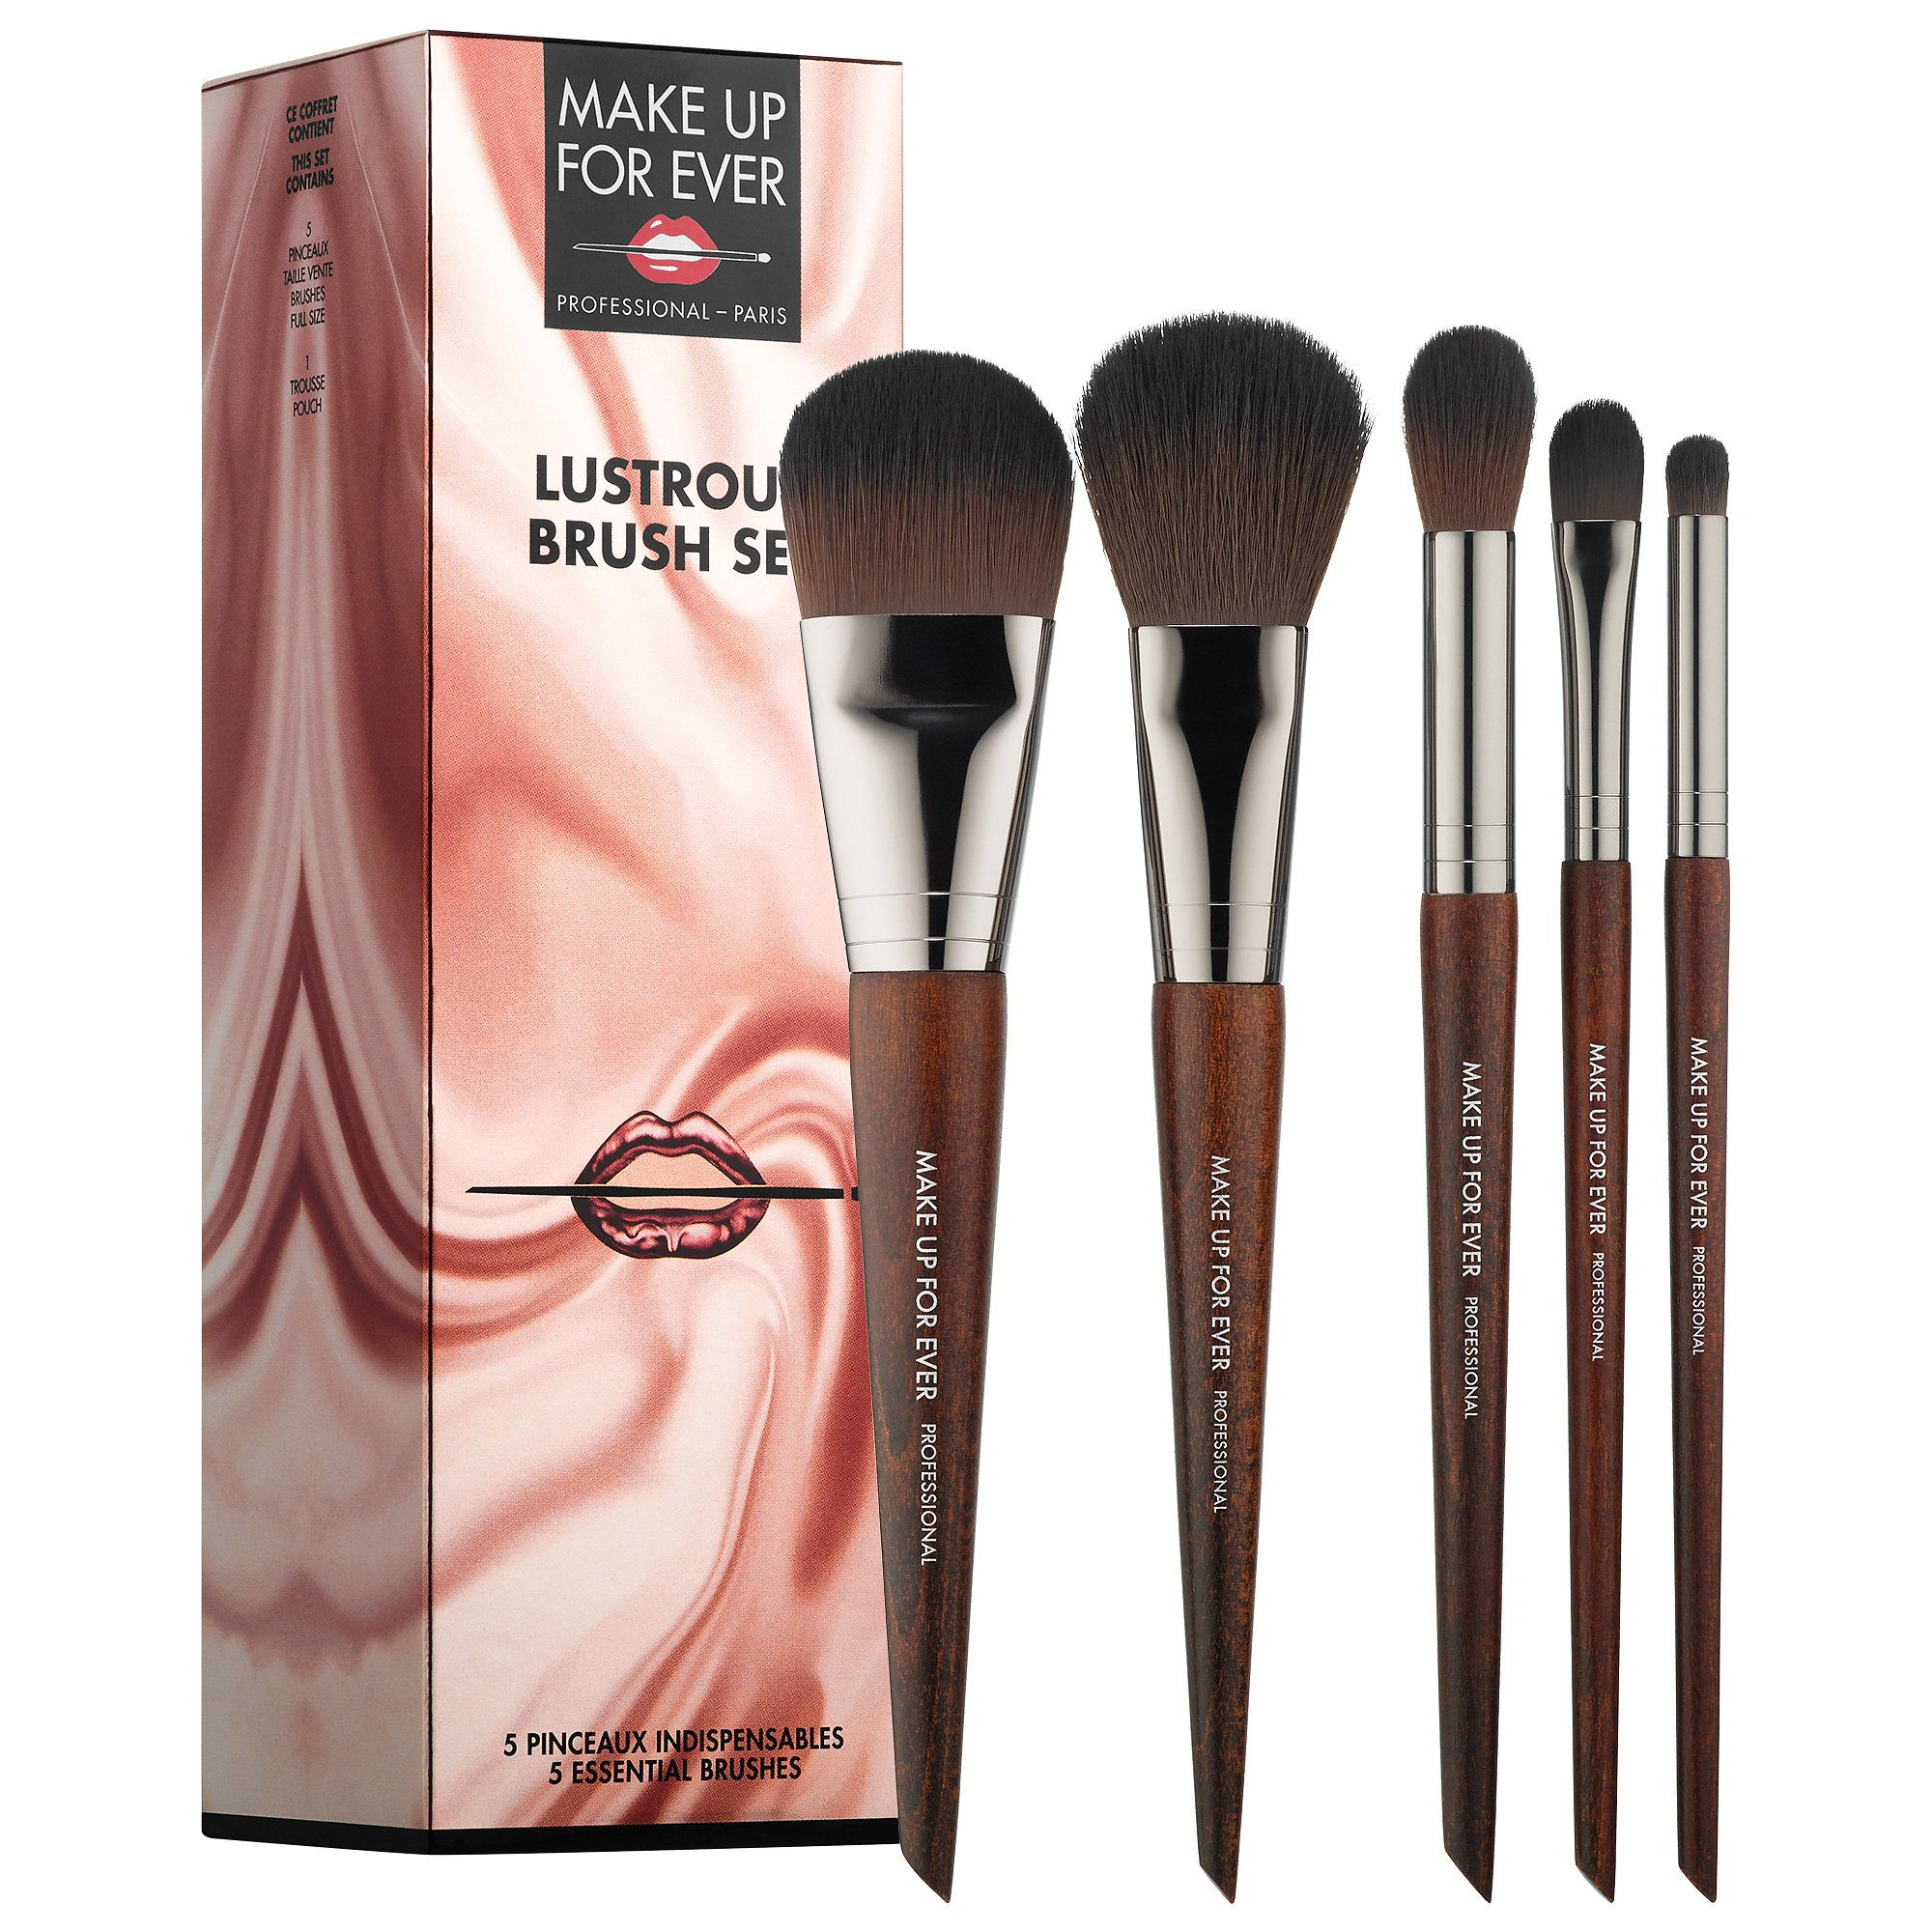 Lustrous Brush Set MAKE UP FOR EVER Sephora Sephora